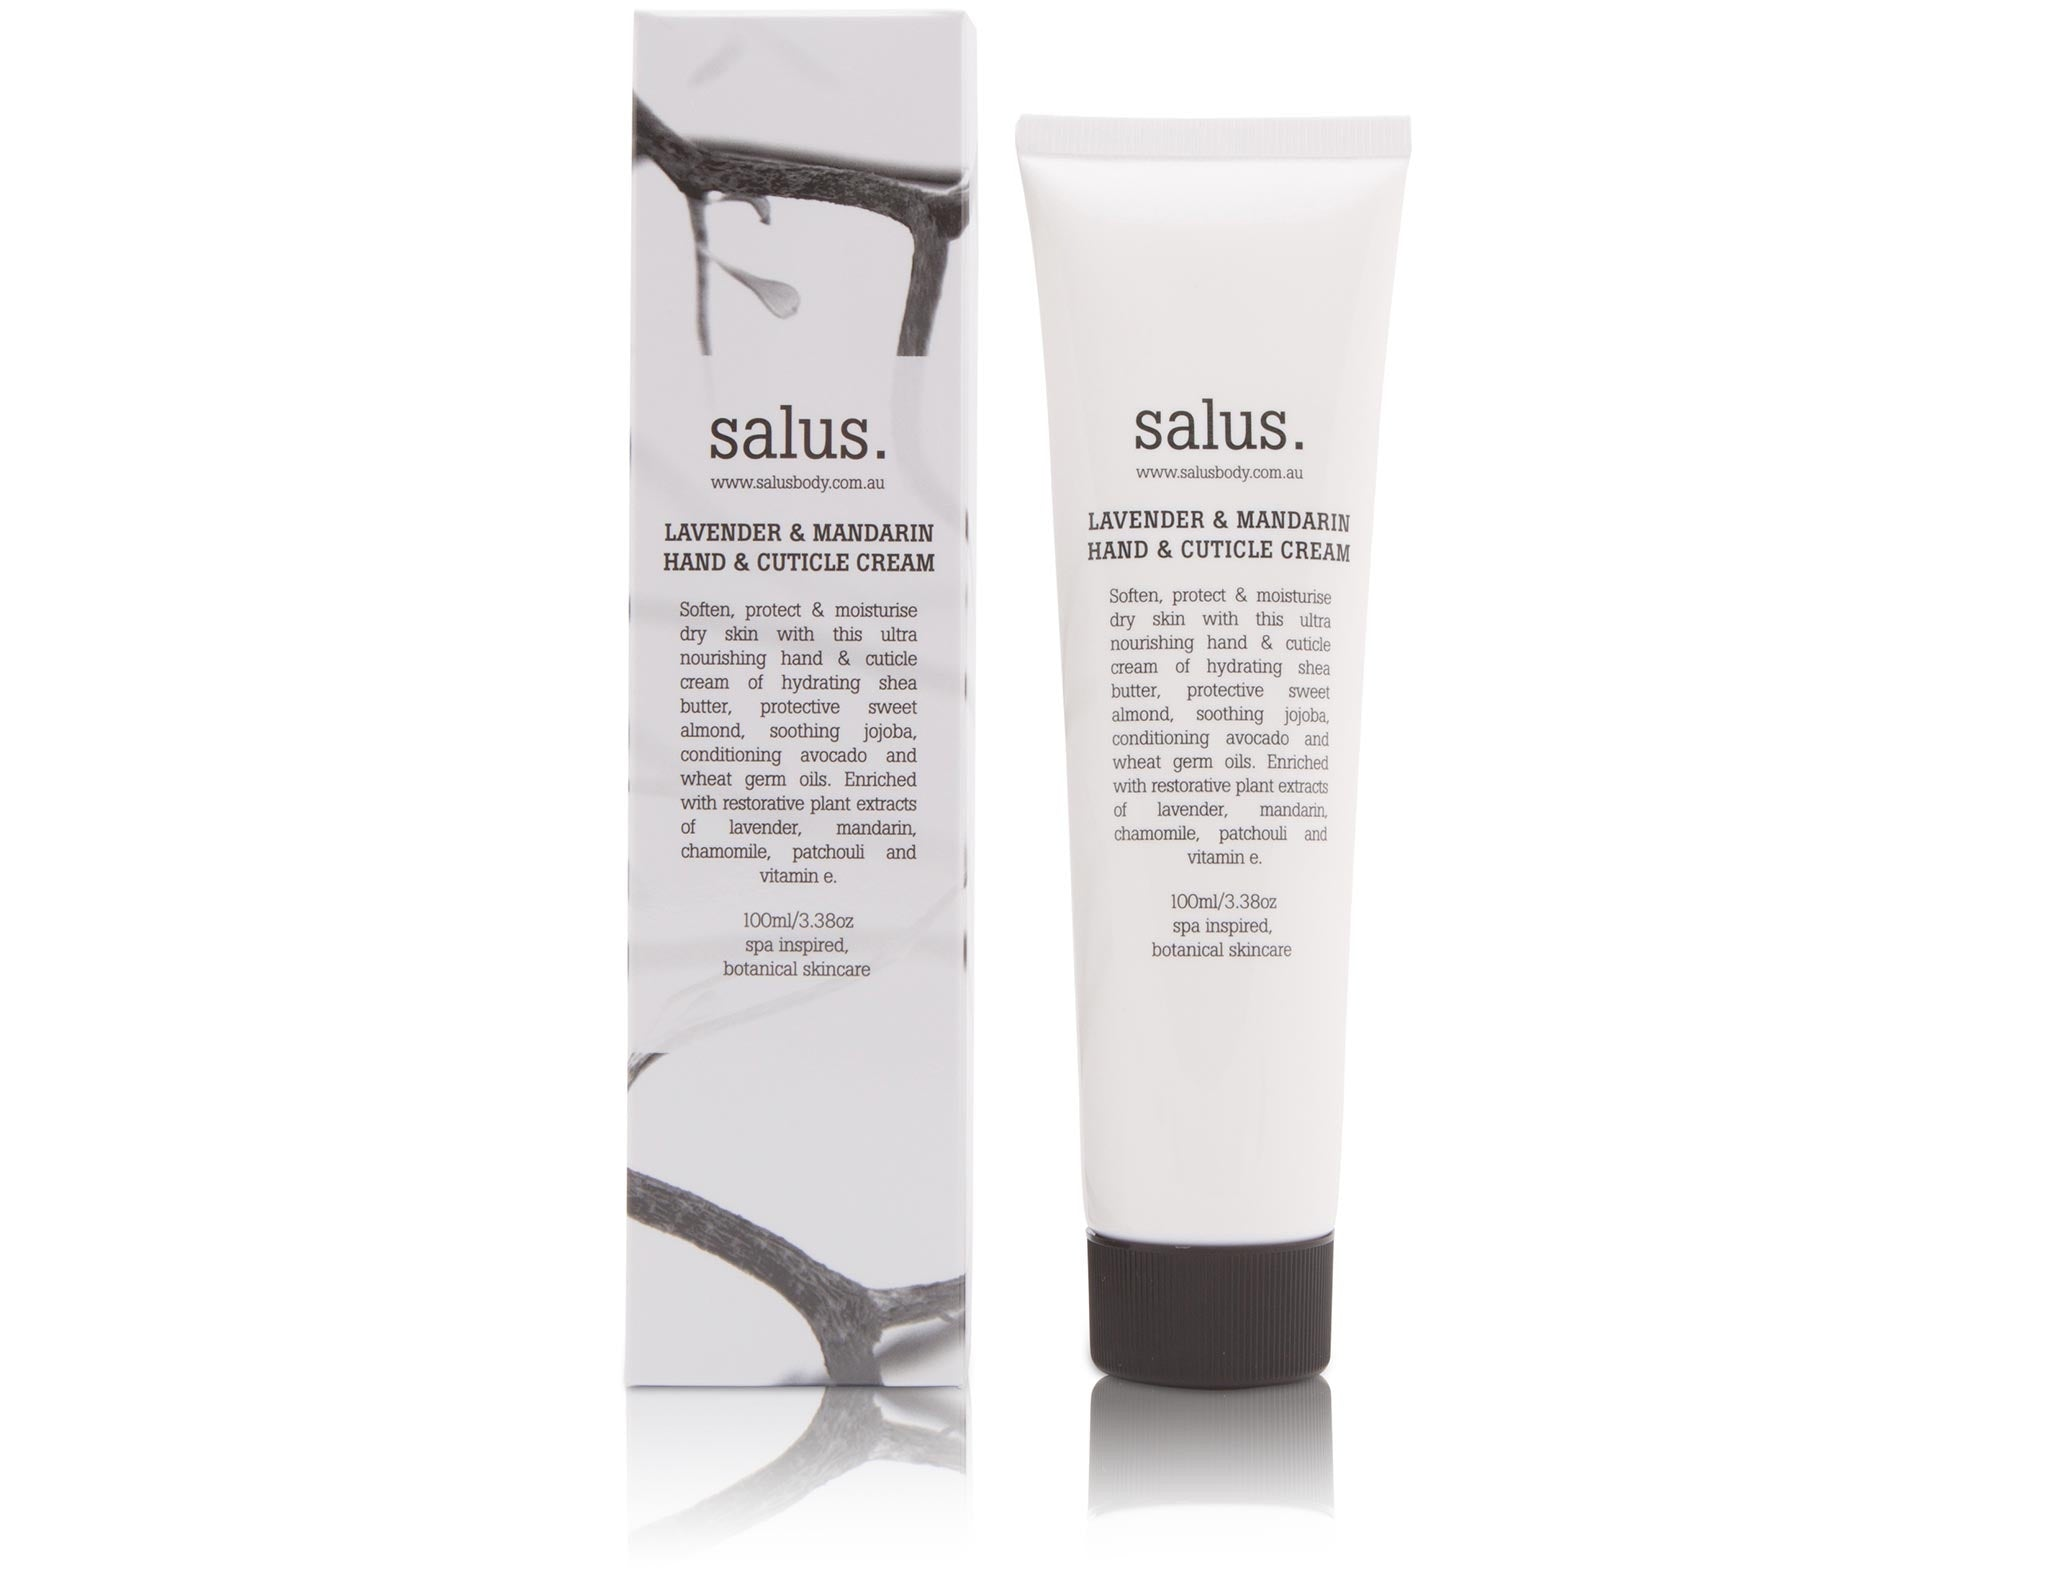 Salus. LAVENDER & MANDARIN HAND & CUTICLE CREAM -100ml